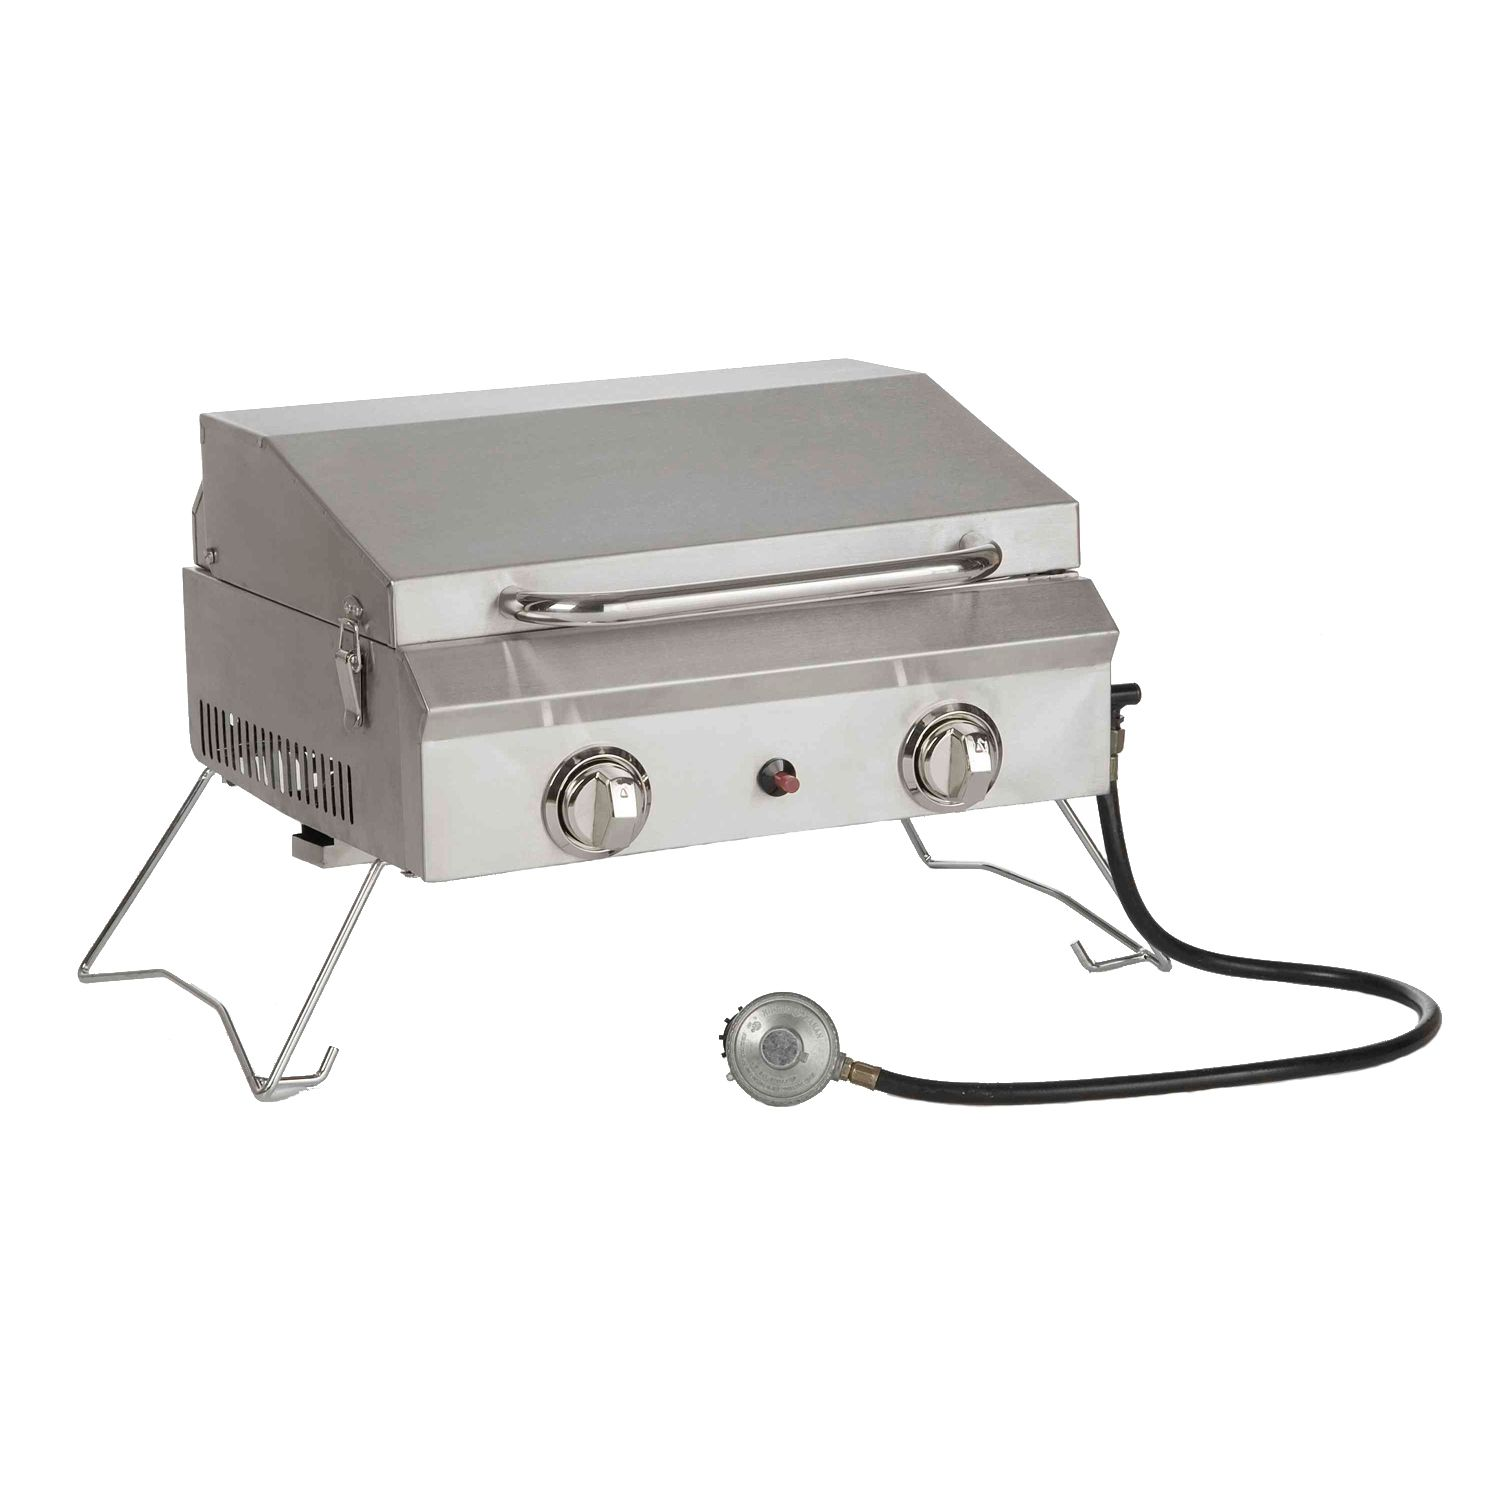 Sportsman s portable stainless steel gas grill with cover